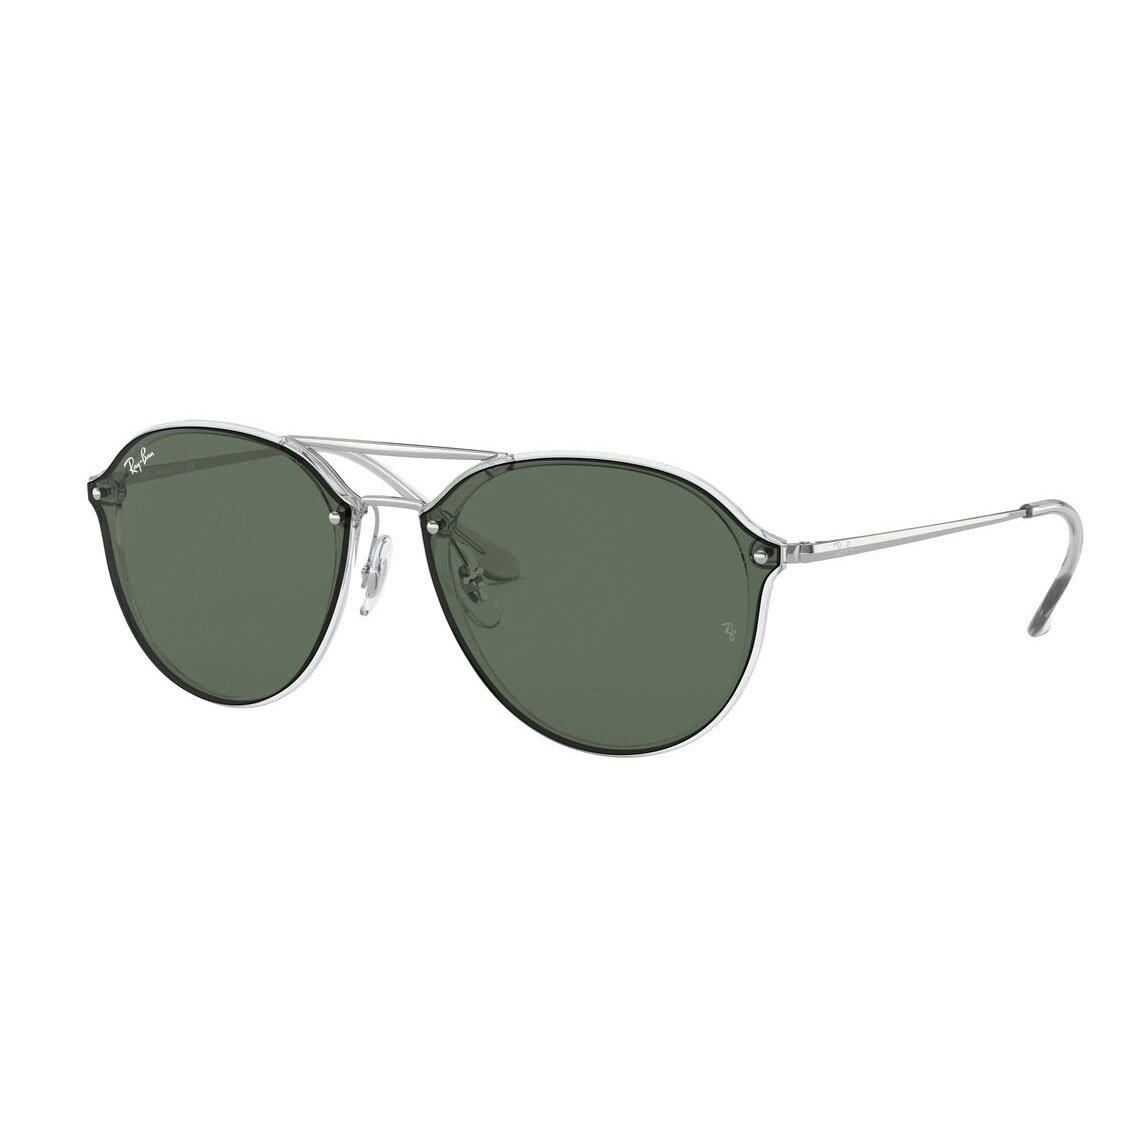 Ray-Ban Blaze double bridge RB4292N 632571 62